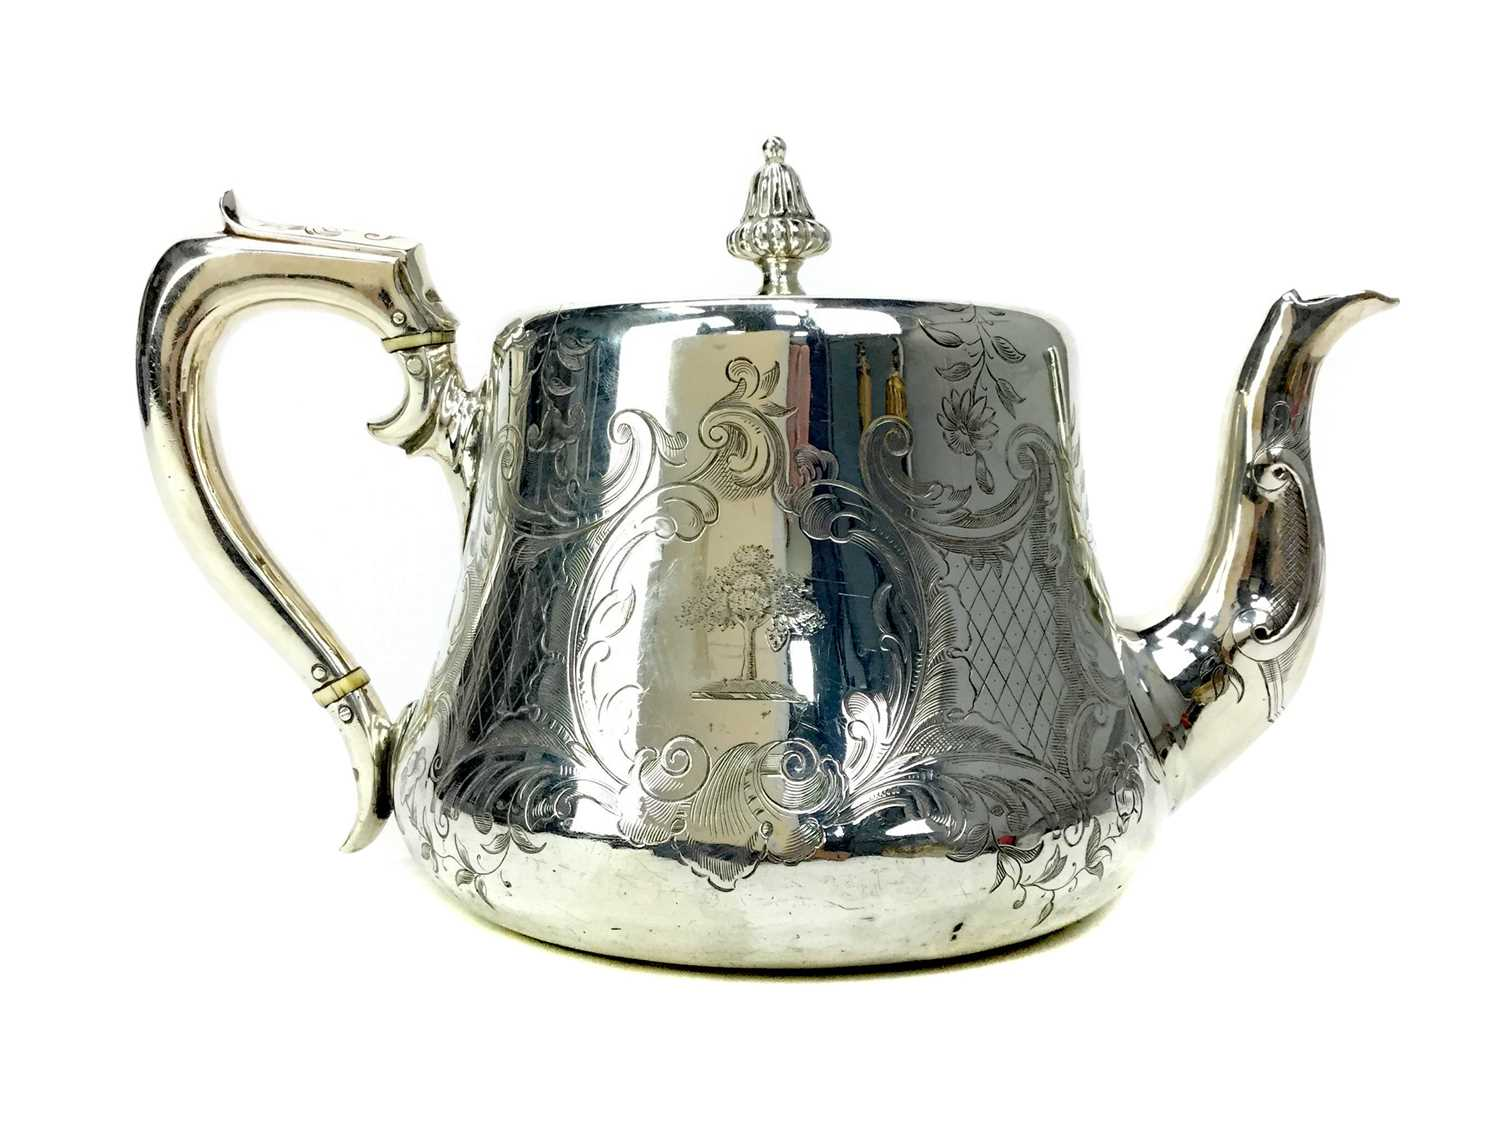 Lot 421 - AN EARLY VICTORIAN SILVER TEA POT